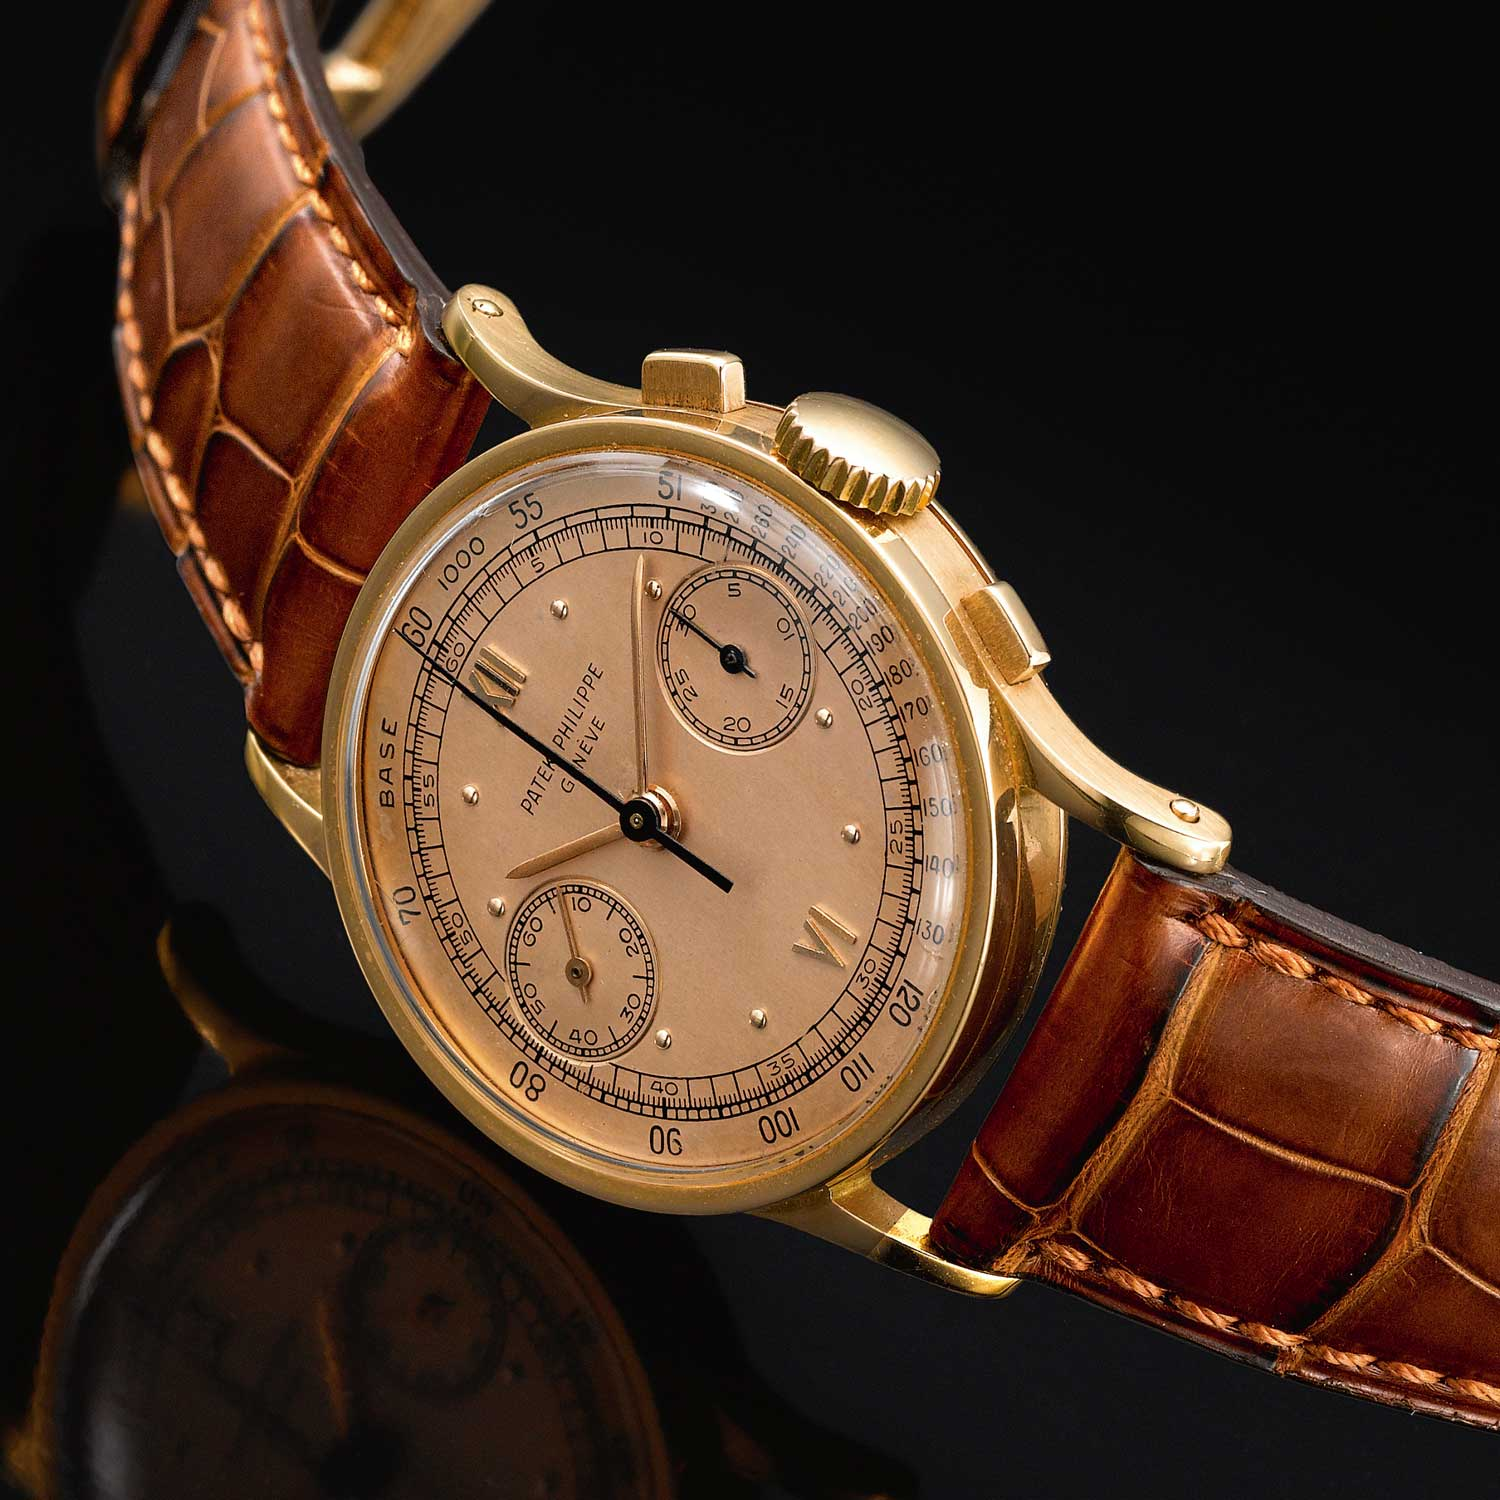 1950 Patek Philippe ref. 533 pink gold chronograph with pink dial and Roman numerals (Image: Sothebys.com)